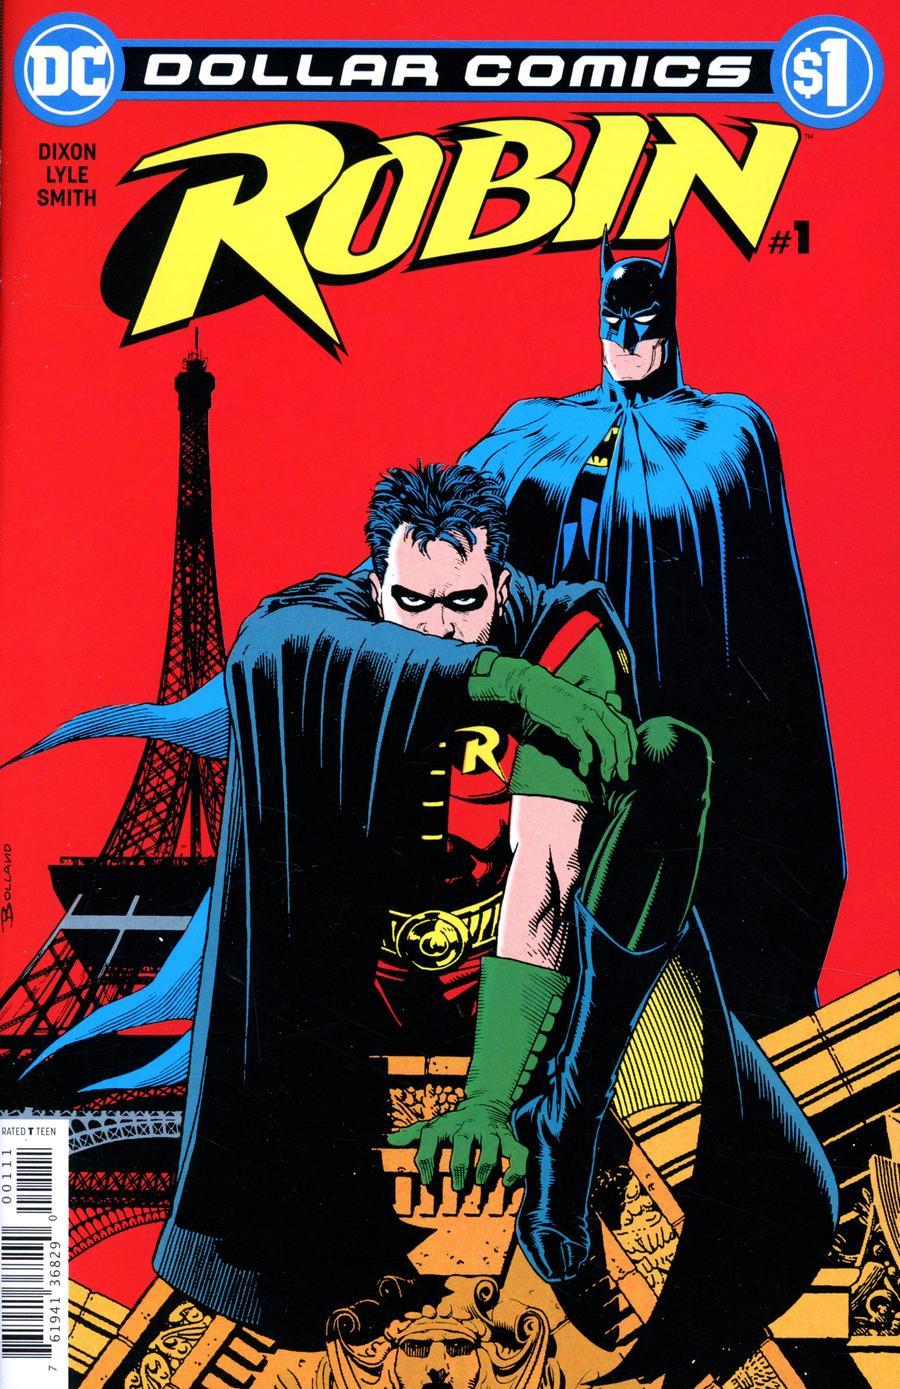 Dollar Comics: Robin Vol 1 1